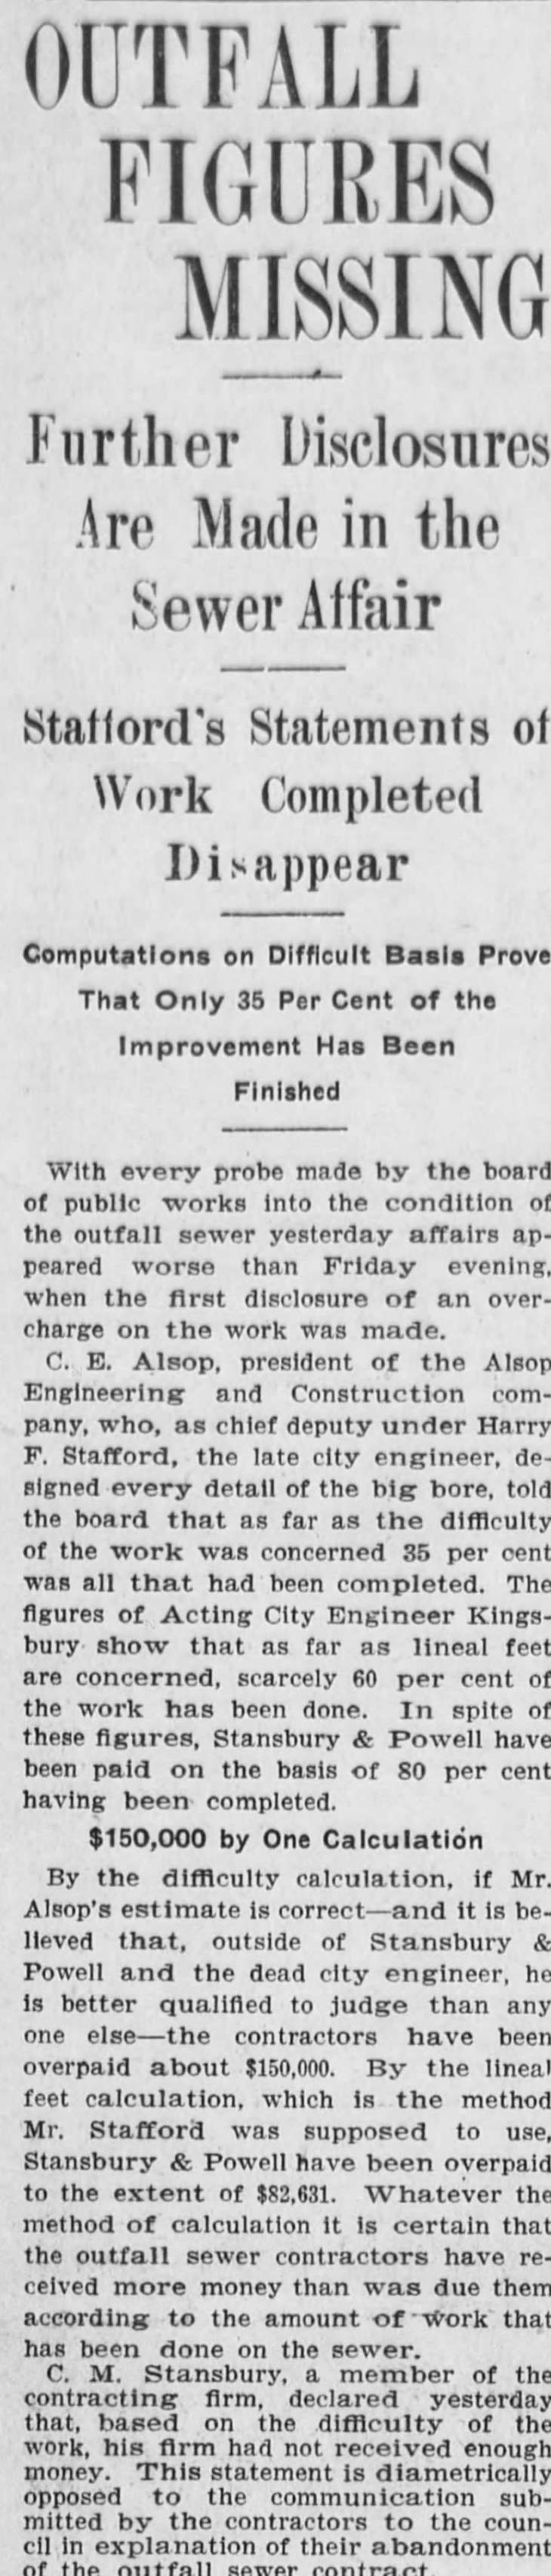 Stafford outfall sewer overpayment Los_Angeles_Herald_Sun__Aug_12__1906_